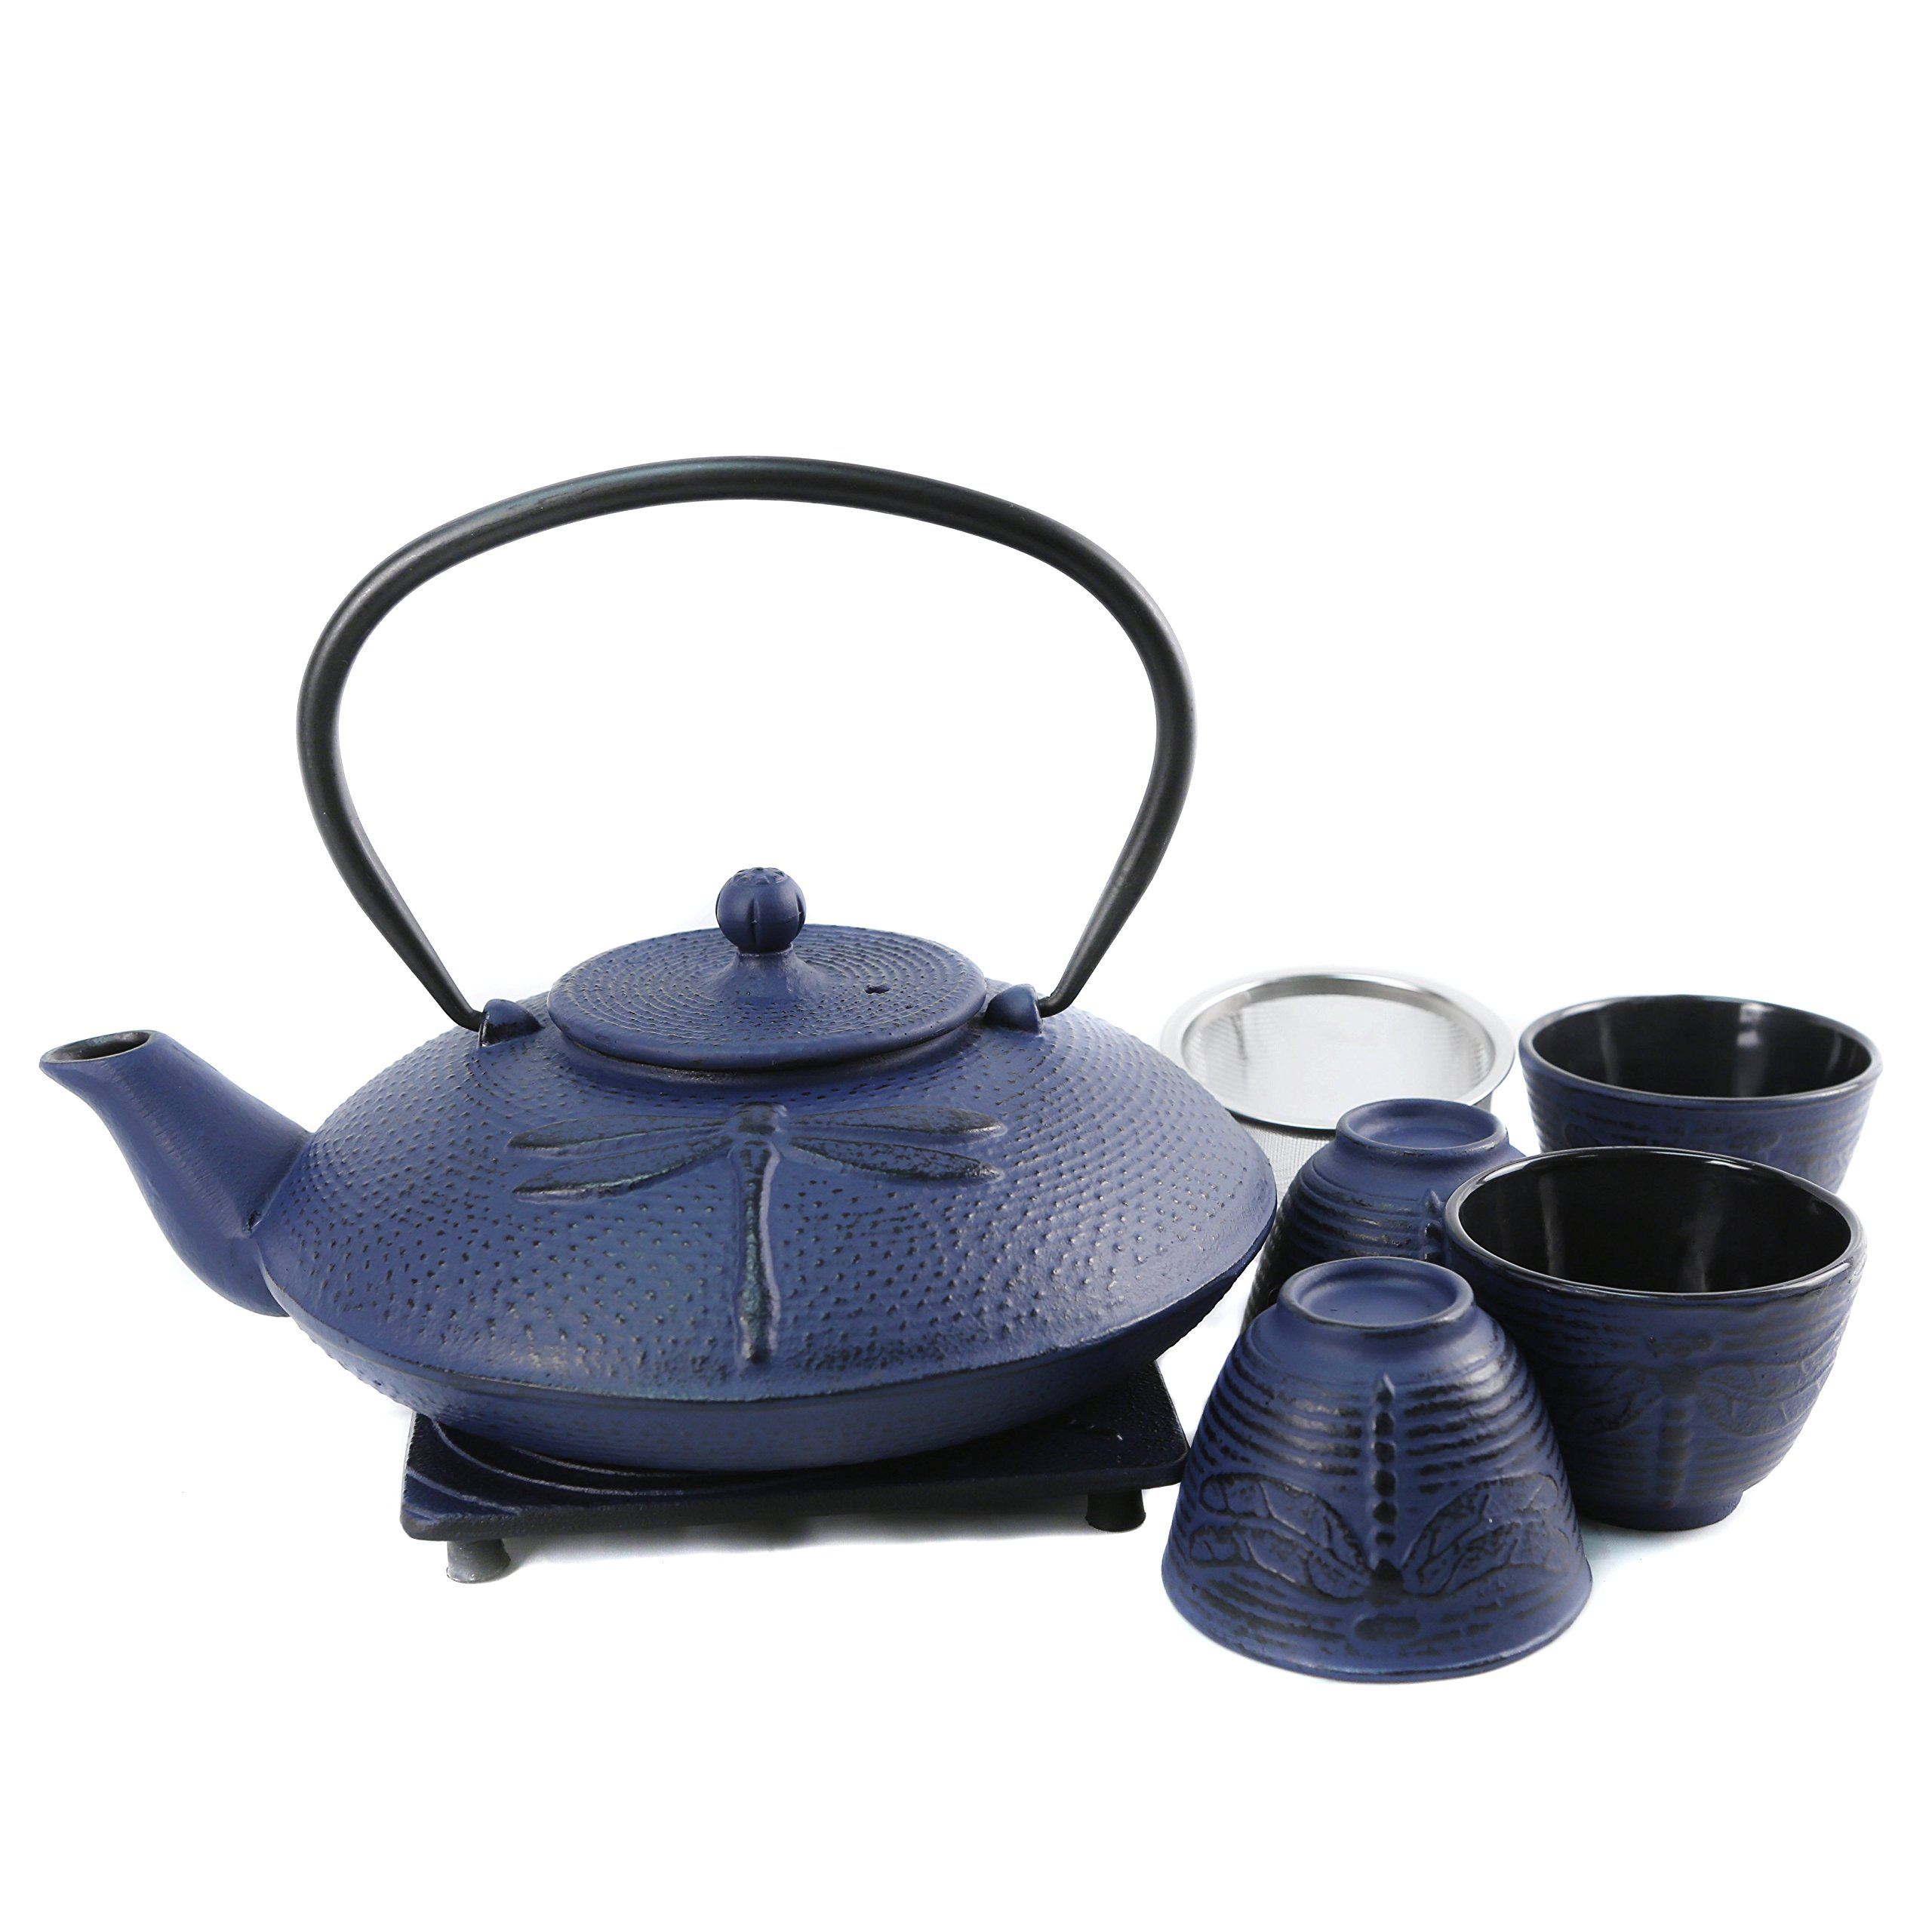 Cuisiland Dragonfly Cast Iron Teapot Set with 4 Cups 37oz Blue by Cuisiland